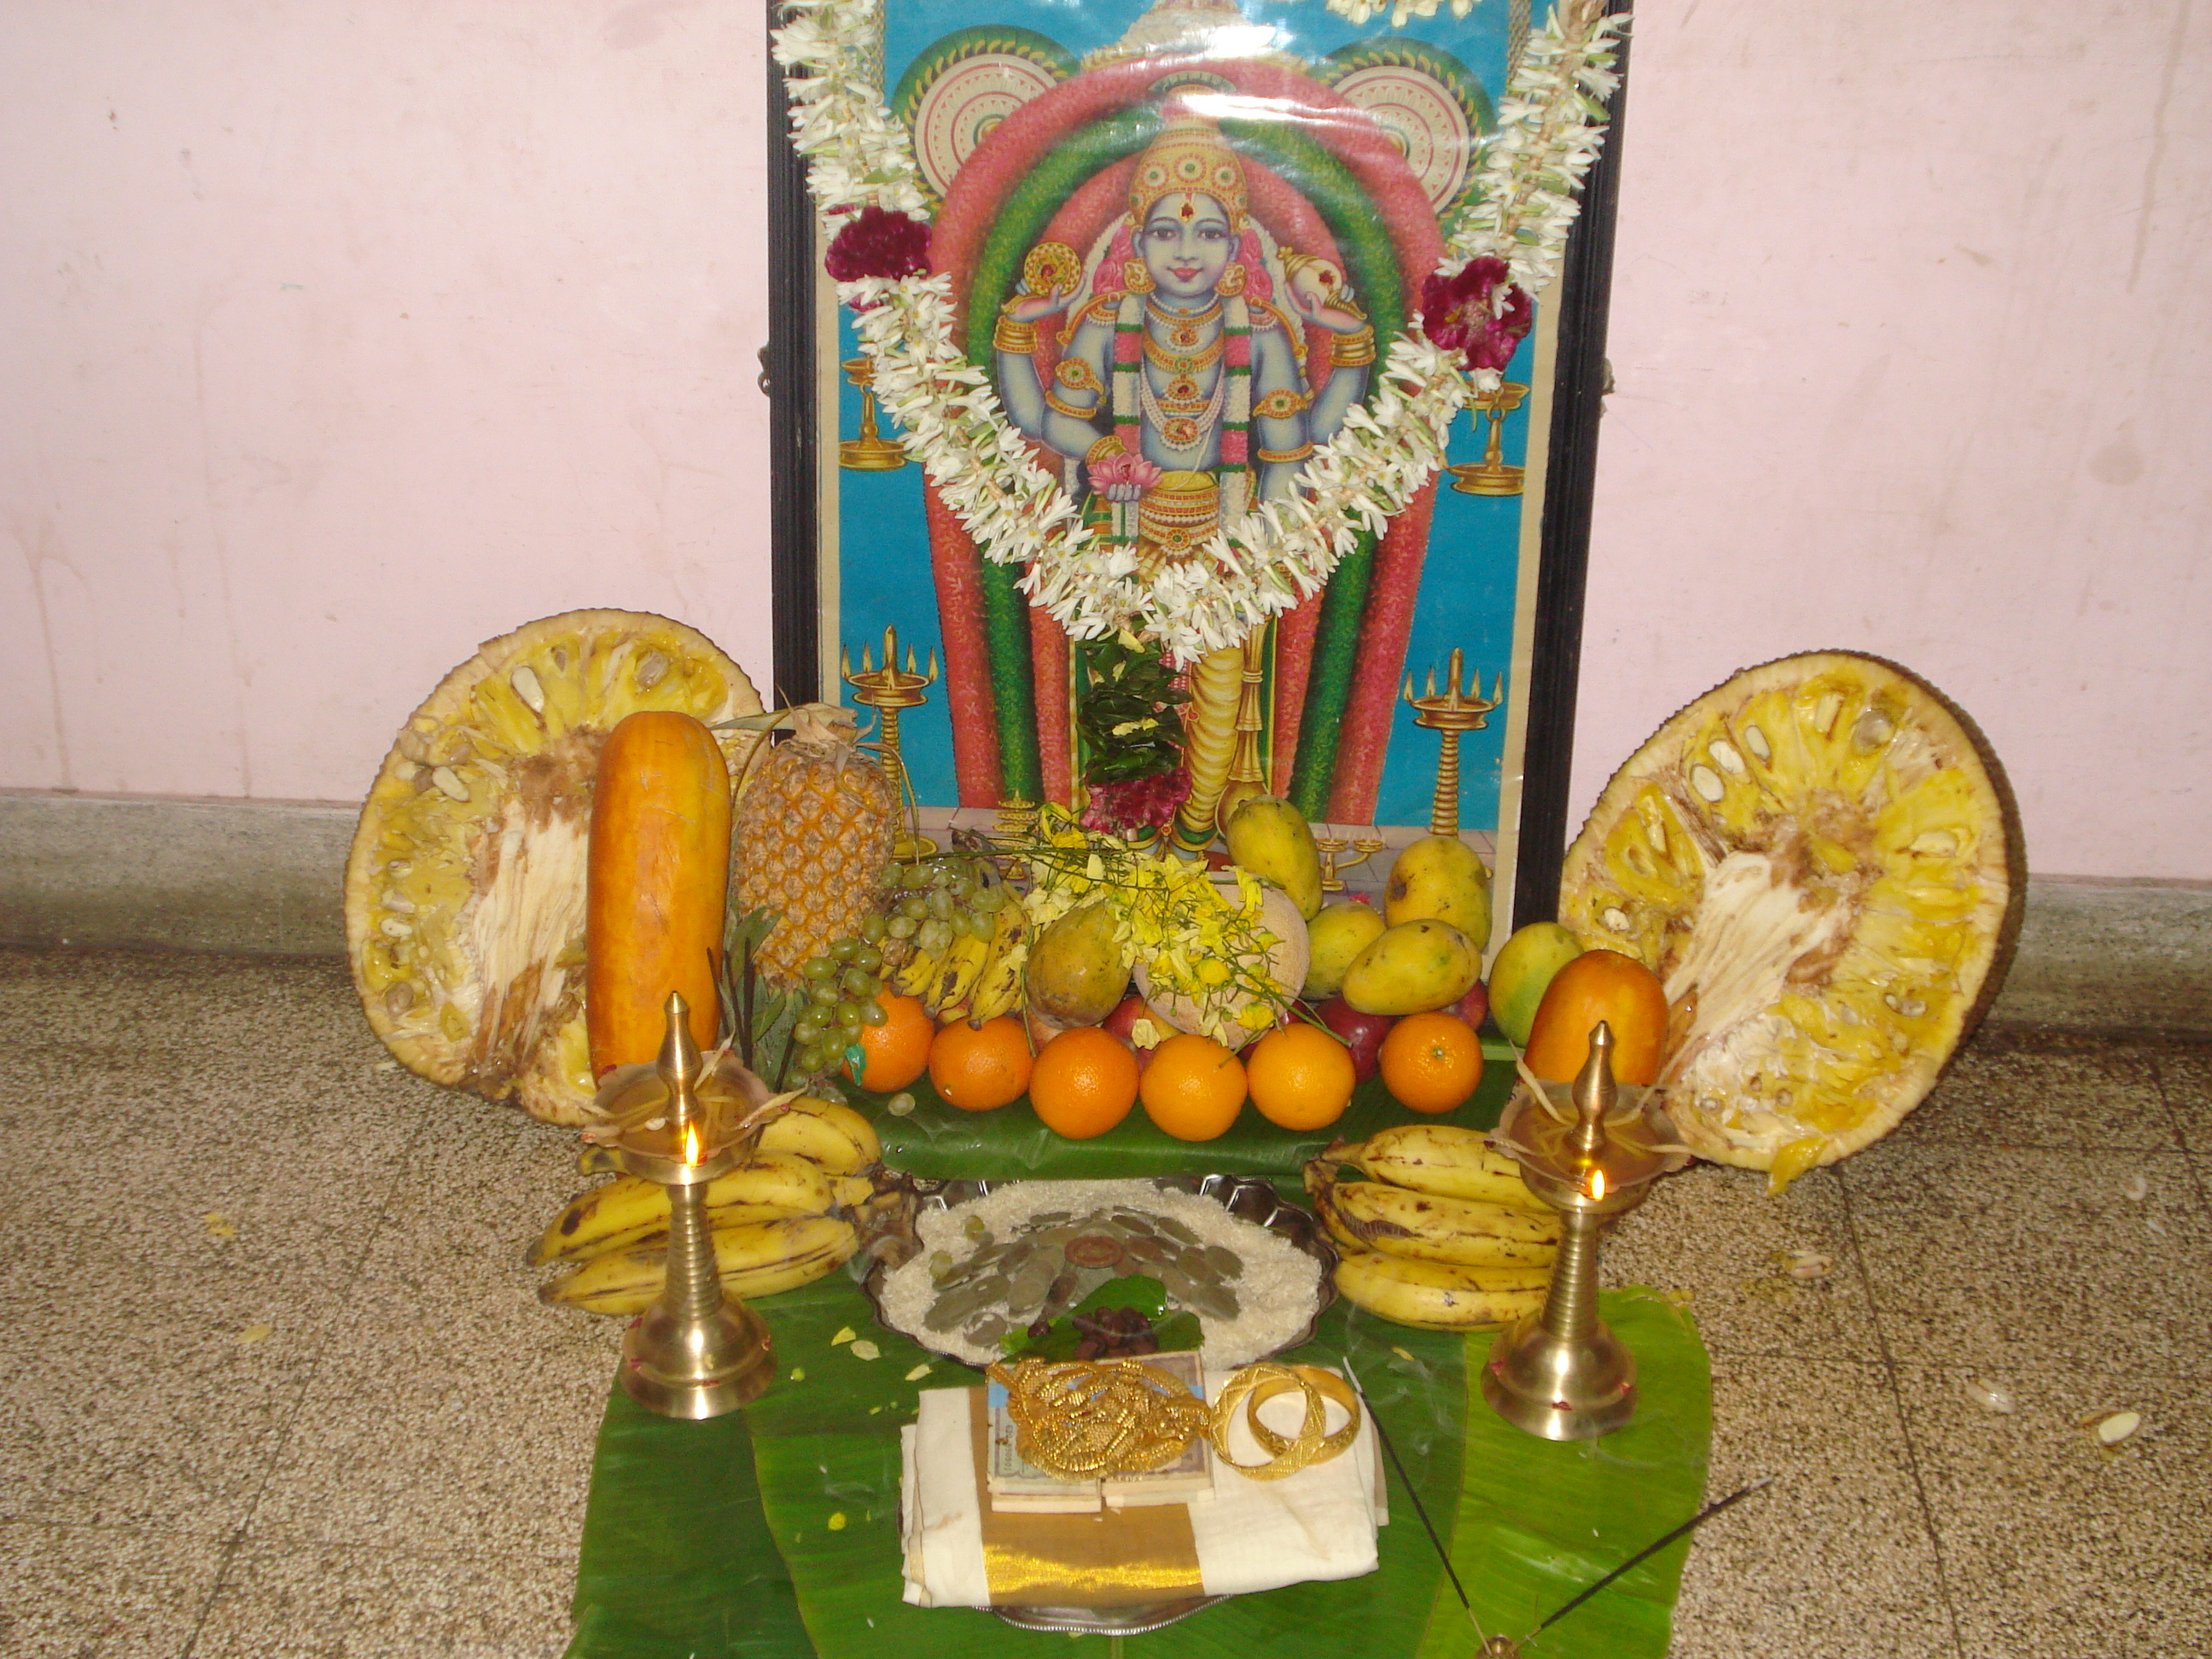 A warm welcome to spring time vishu tamil new year - New year celebration at home ...